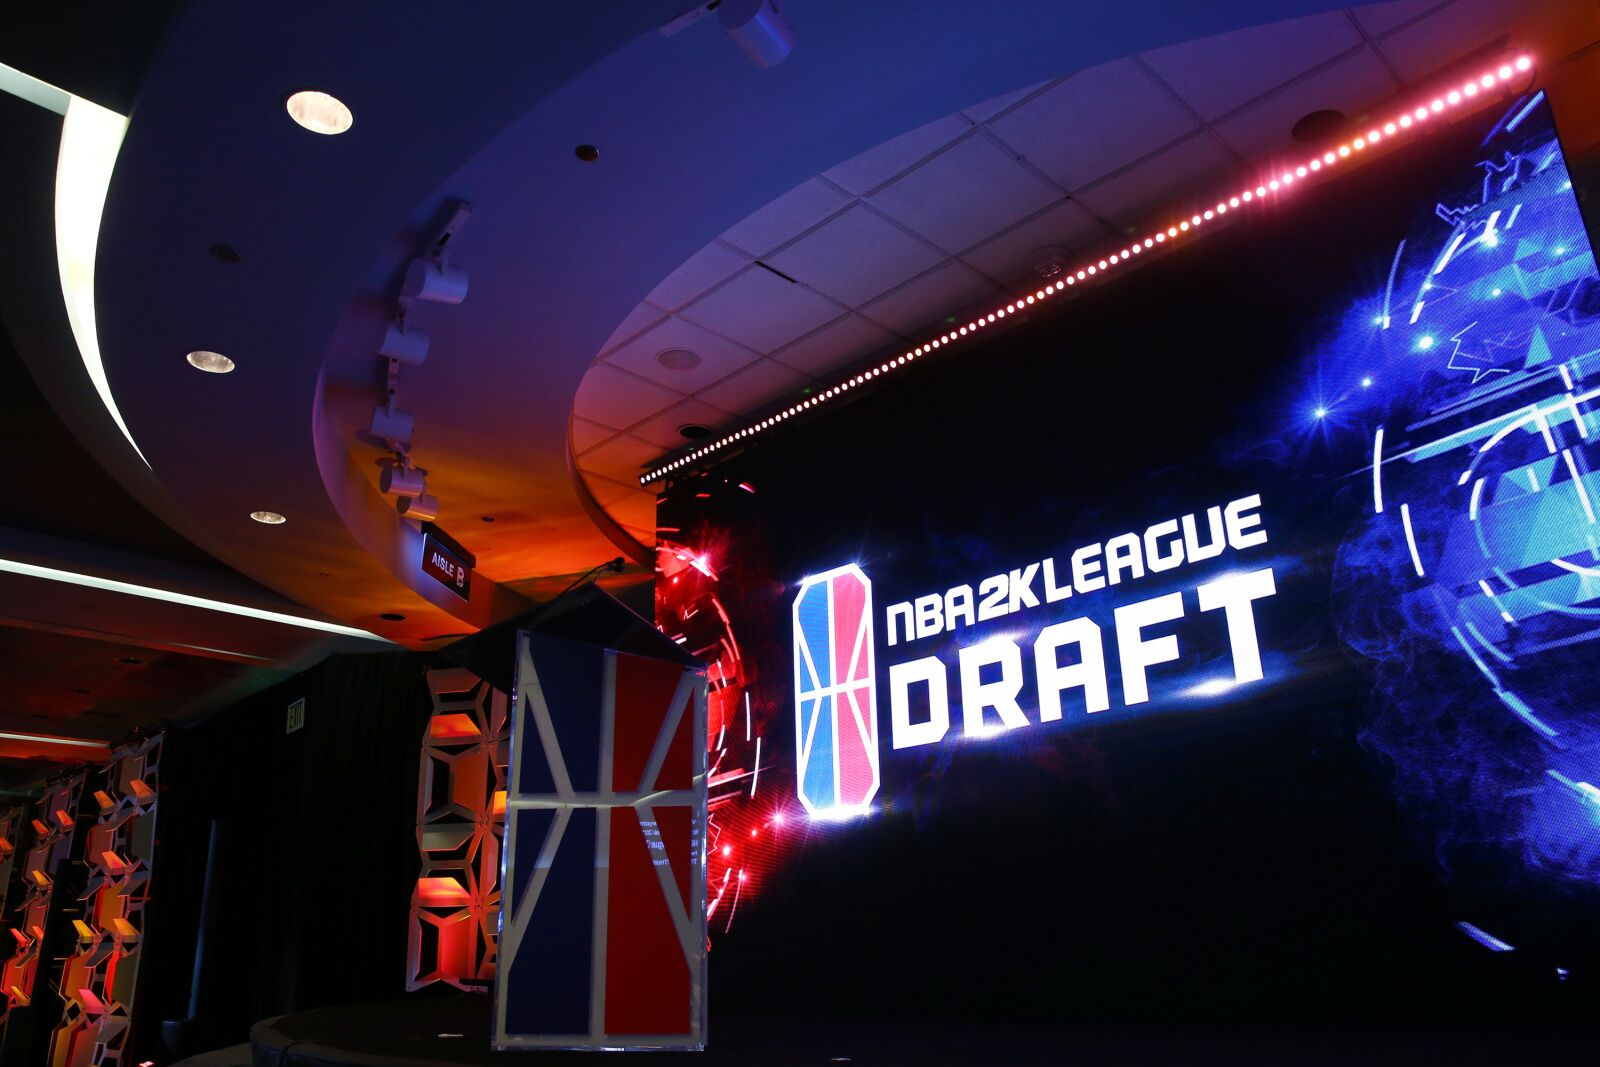 Los Angeles Clippers: Predicting NBA 2k19 Player Ratings